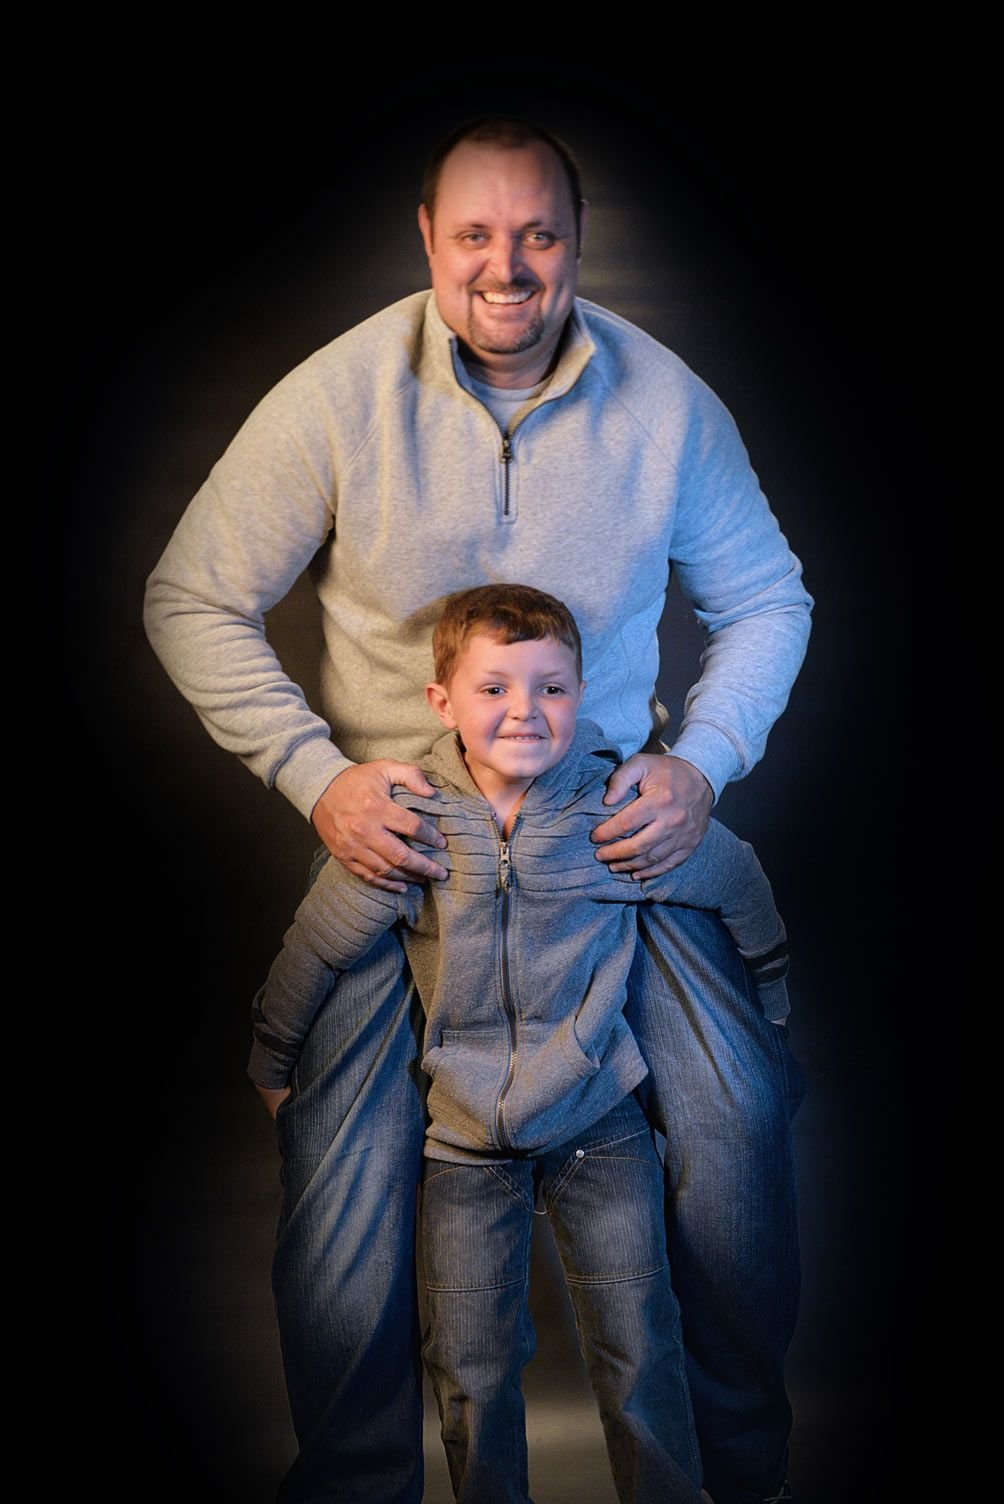 father + son family photography